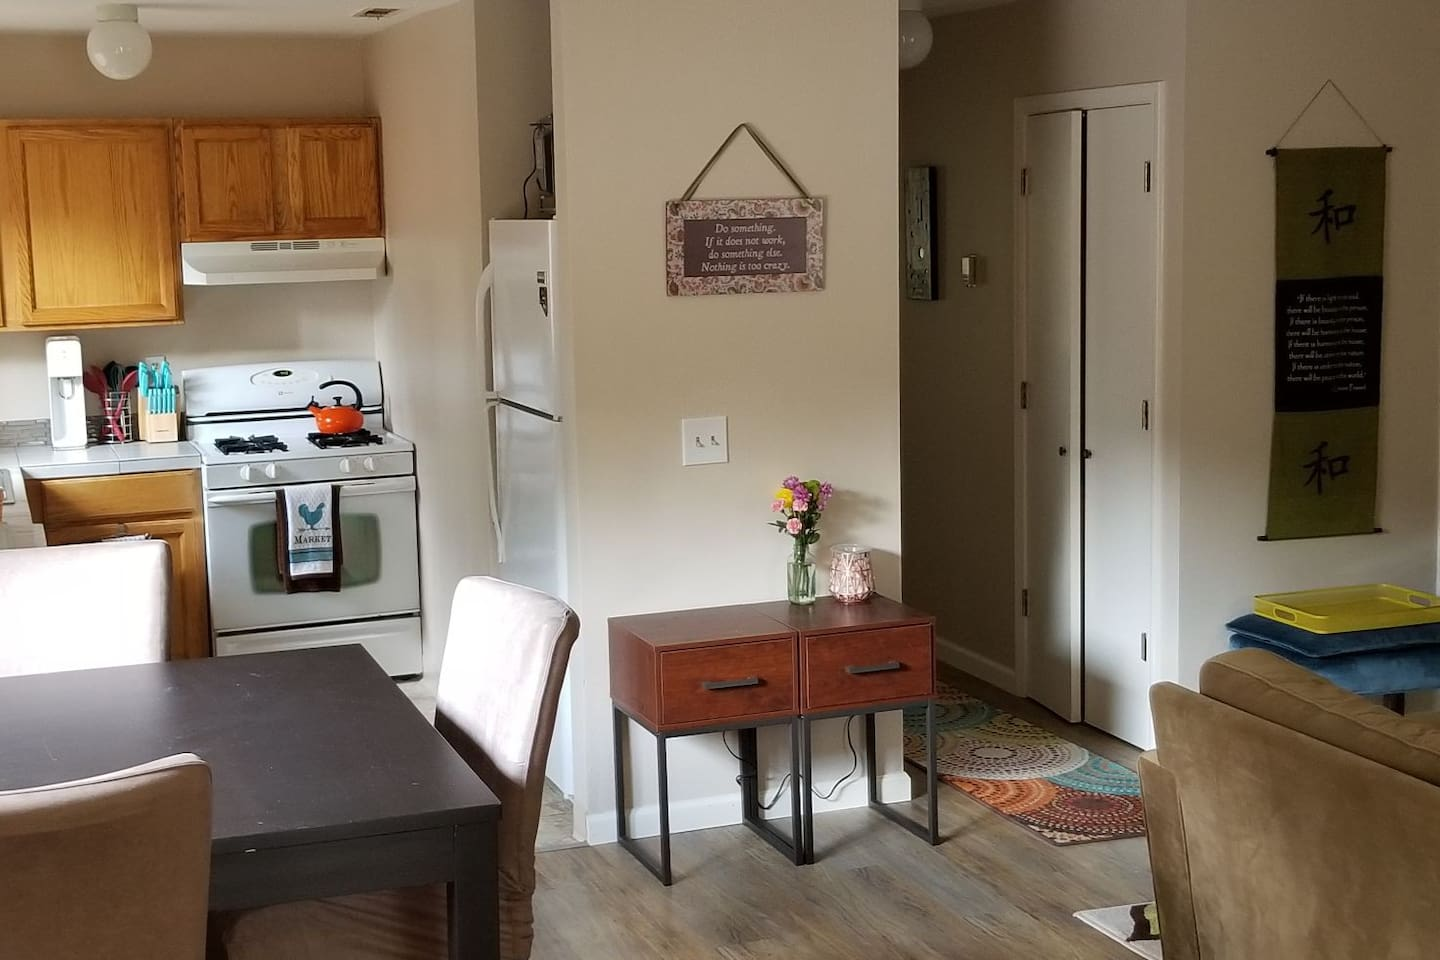 Fully equipped kitchen with gas stovetop; microwave on top of fridge; bar height dining table; stackable washer and dryer behind double doors in hallway.